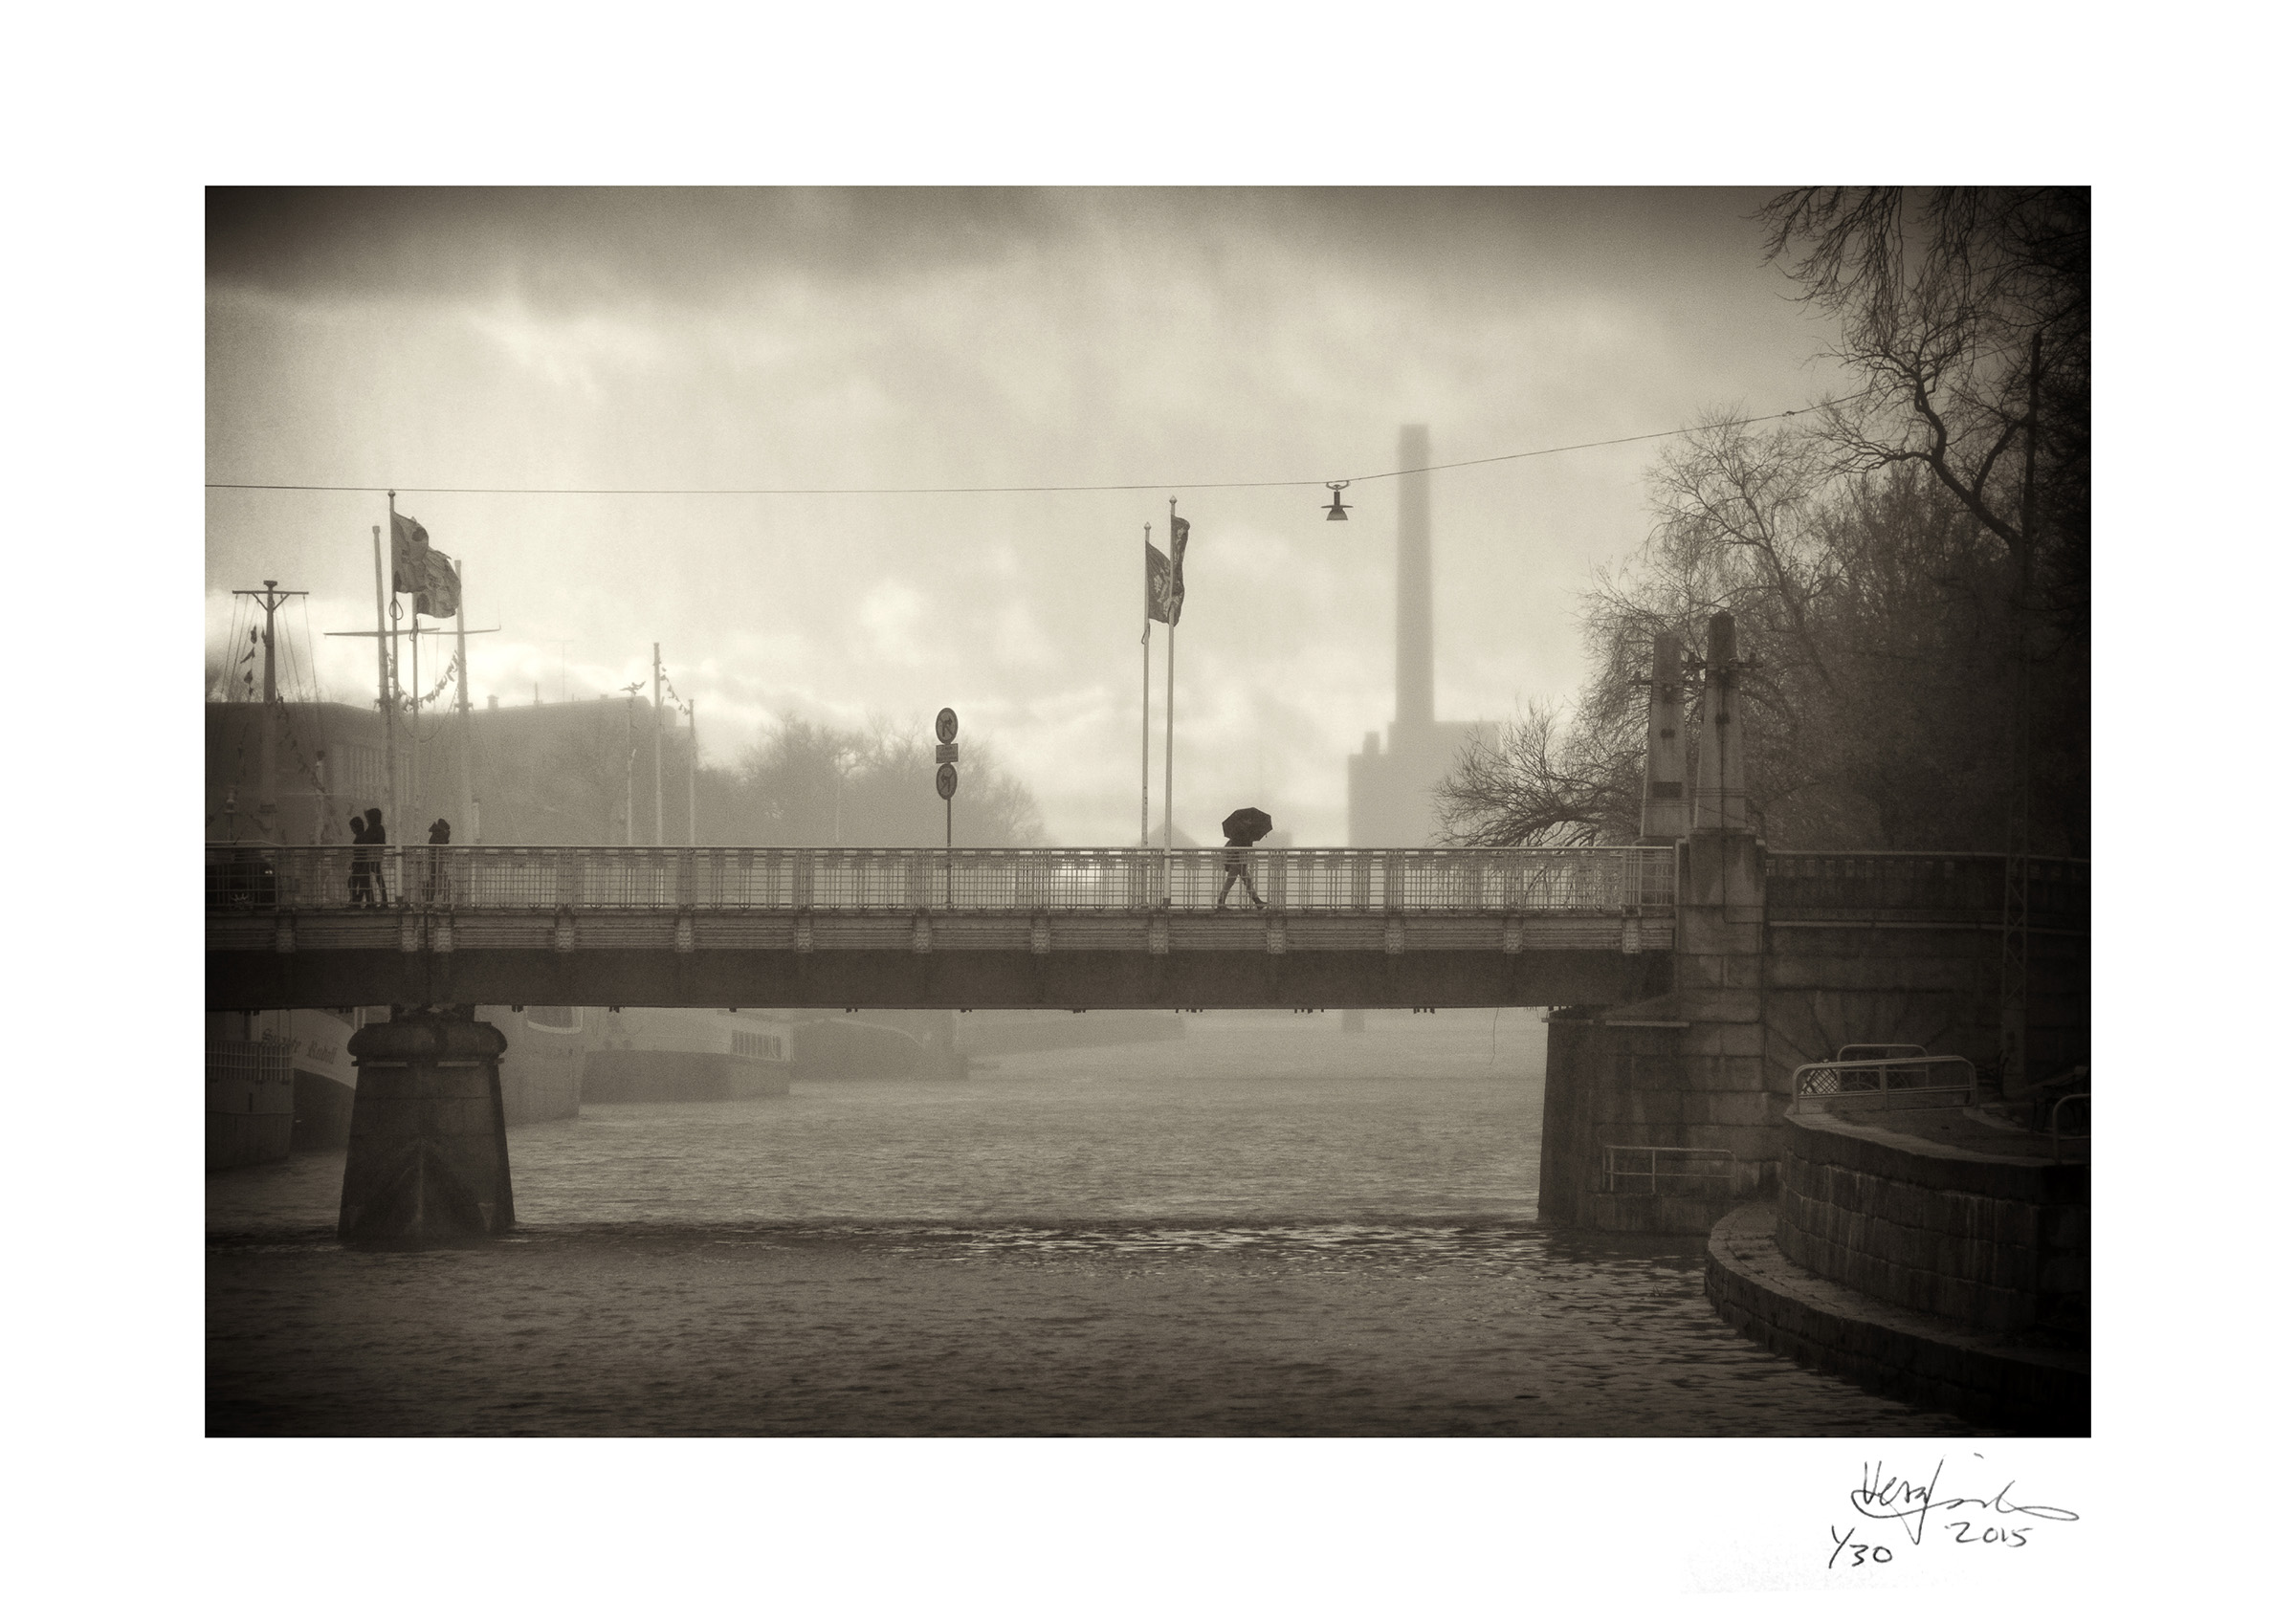 STORMY WEATHER   | The Aura River Bridge during a November storm | First edition print (1/30) on A4 size 300 gsm ICE SILVER white iridescent card with a silver sheen, signed and numbered.   FINE ART PRINT     AVAILABLE at TAIKO.FI online art gallery